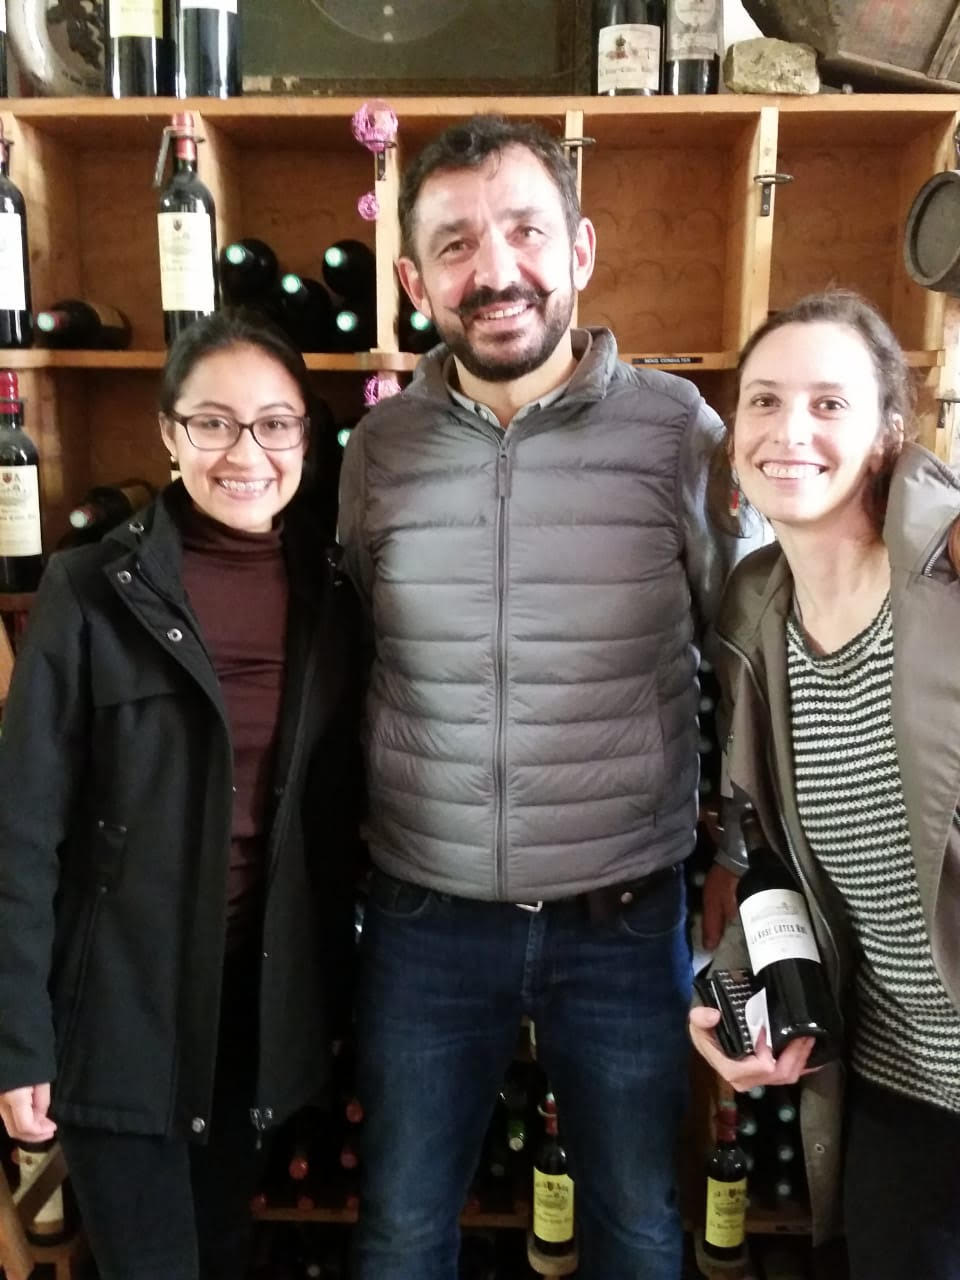 My roommate and fellow language teaching assistant Brenda and I with Château La Rose Cotes Rol proprietor Pierre Mirande